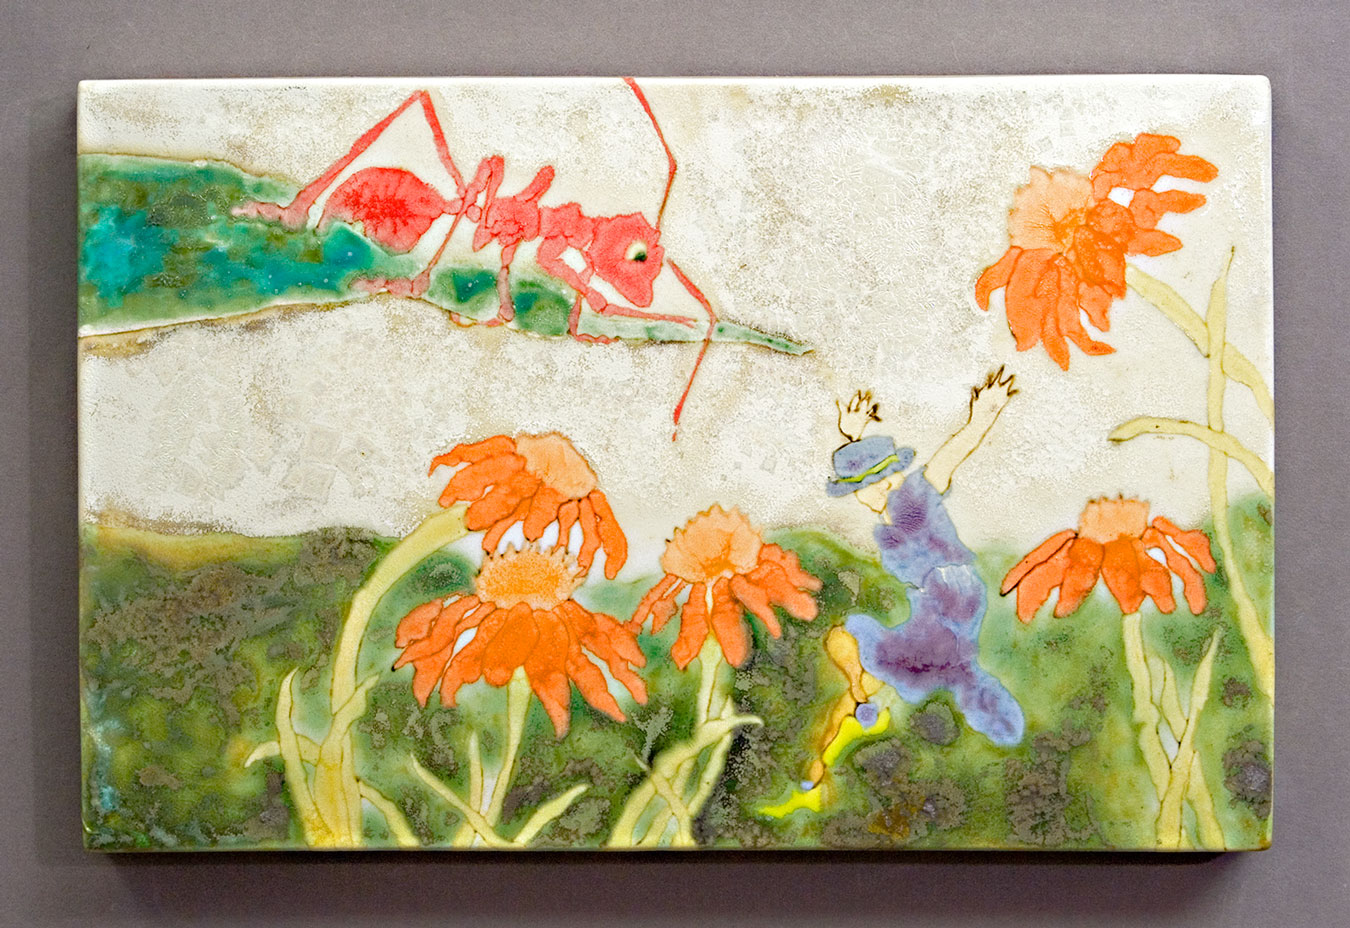 Girl-and-Ant-Ceramic-Art-Painting-Samantha-Henneke.jpg